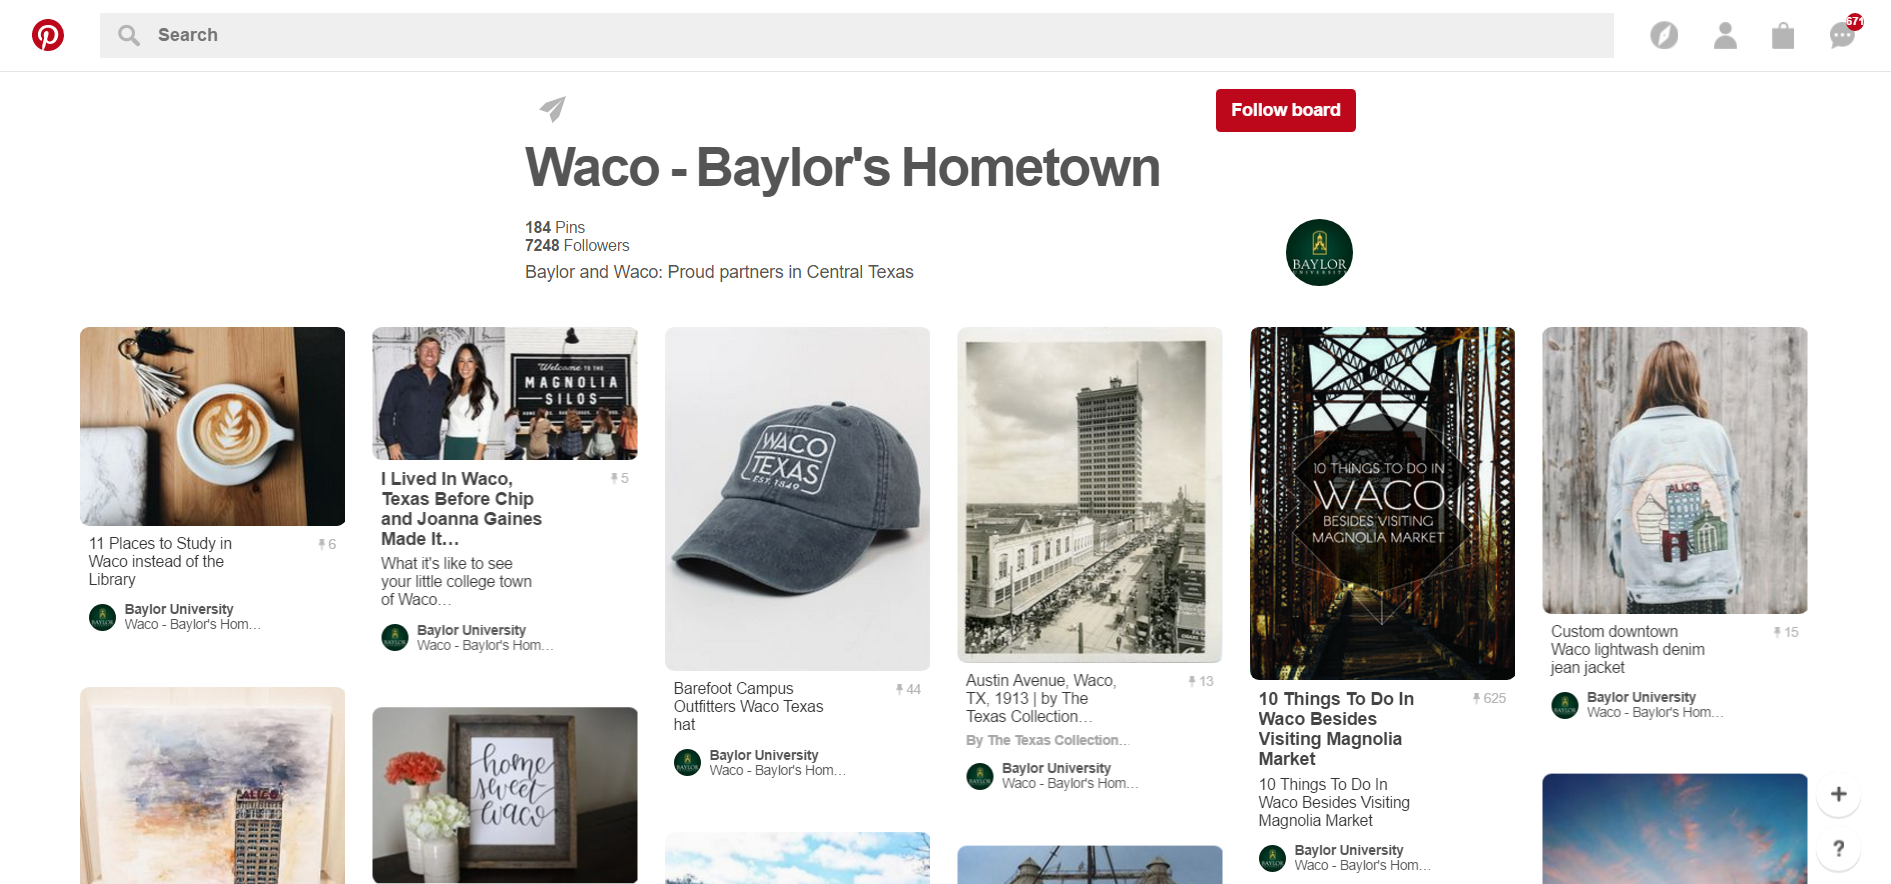 Waco-Baylor Pinterest page